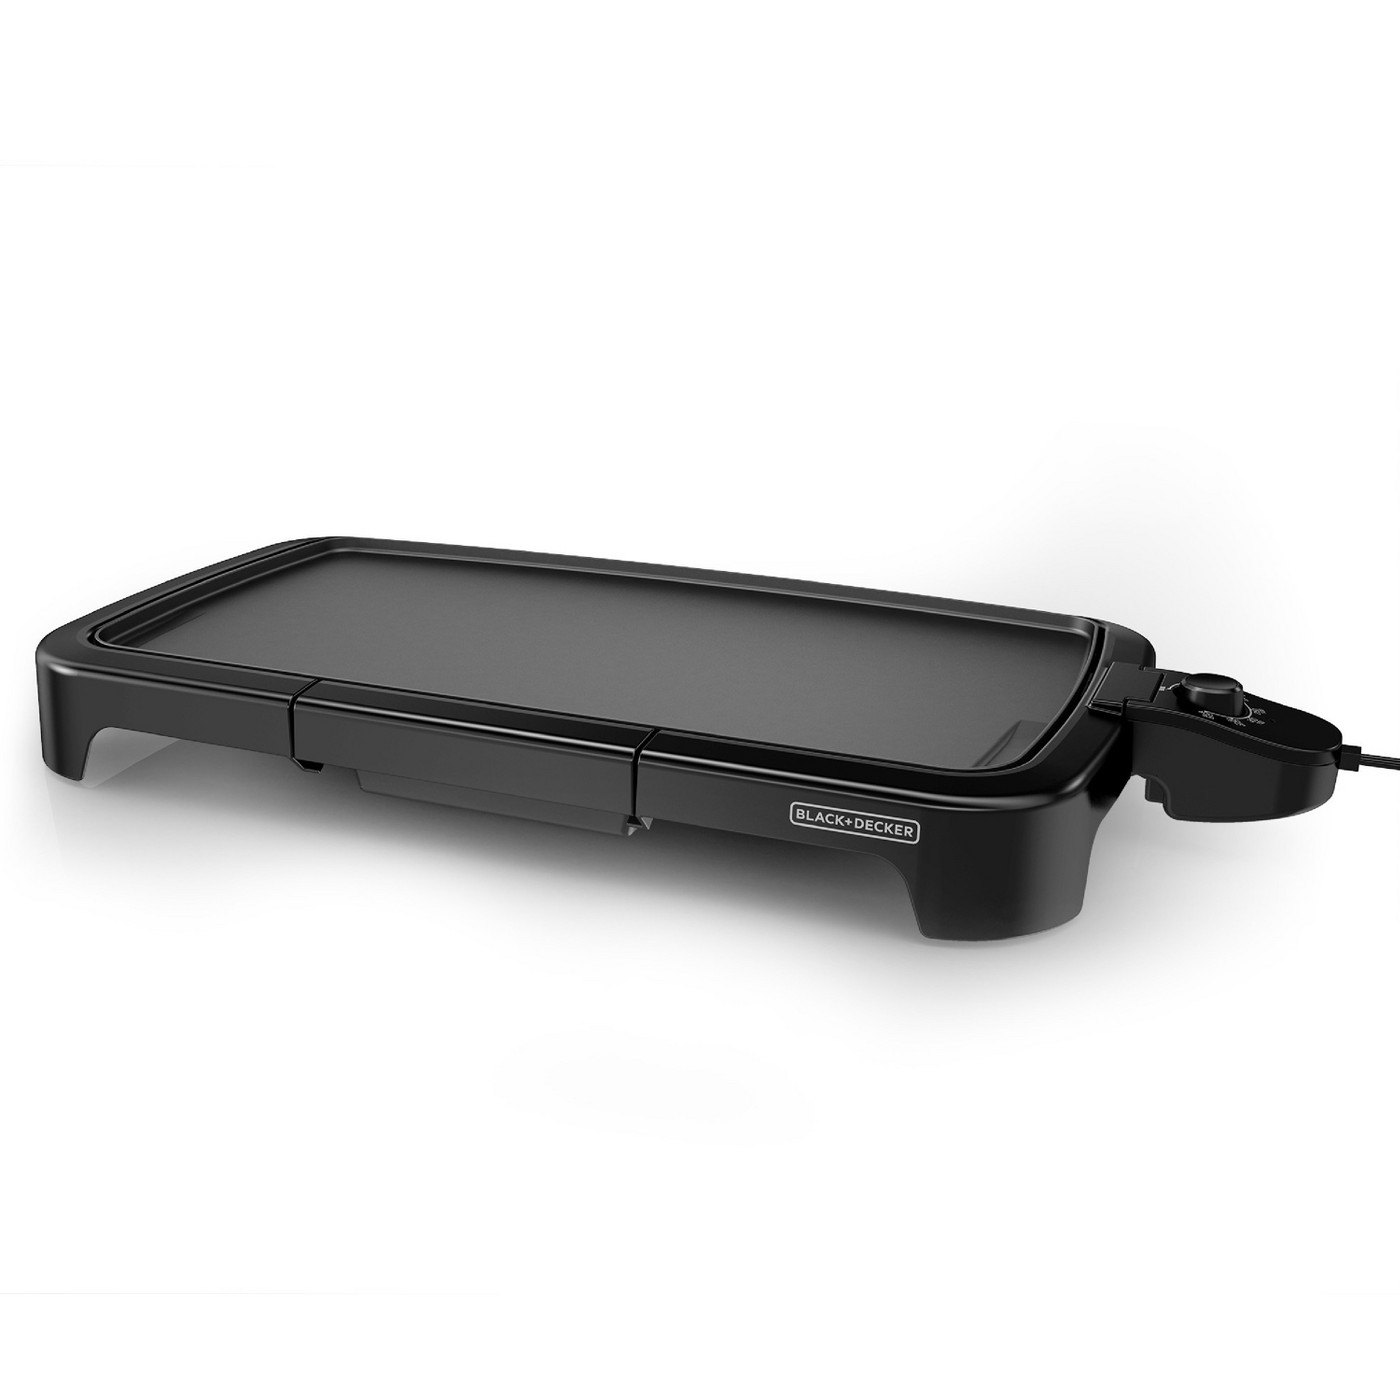 Save 20% on BLACK+DECKER Family-Sized Electric Griddle - Black GD2011B